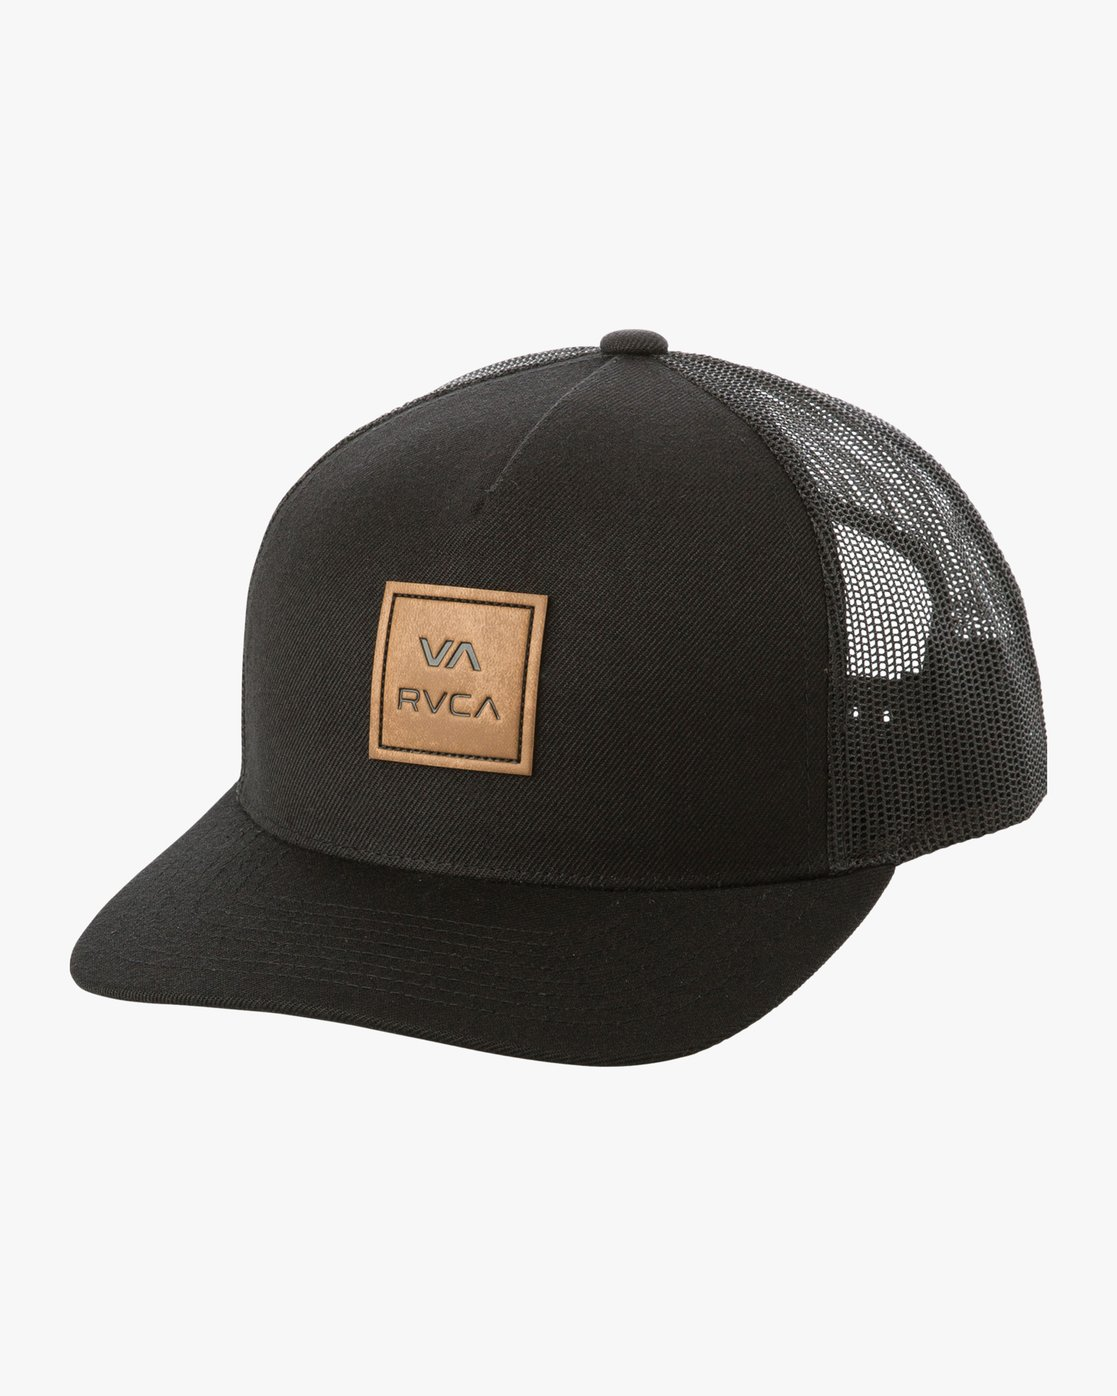 0 VA All The Way Curved Brim Trucker Hat Black MAHWPRVA RVCA 3aebb47ddb7